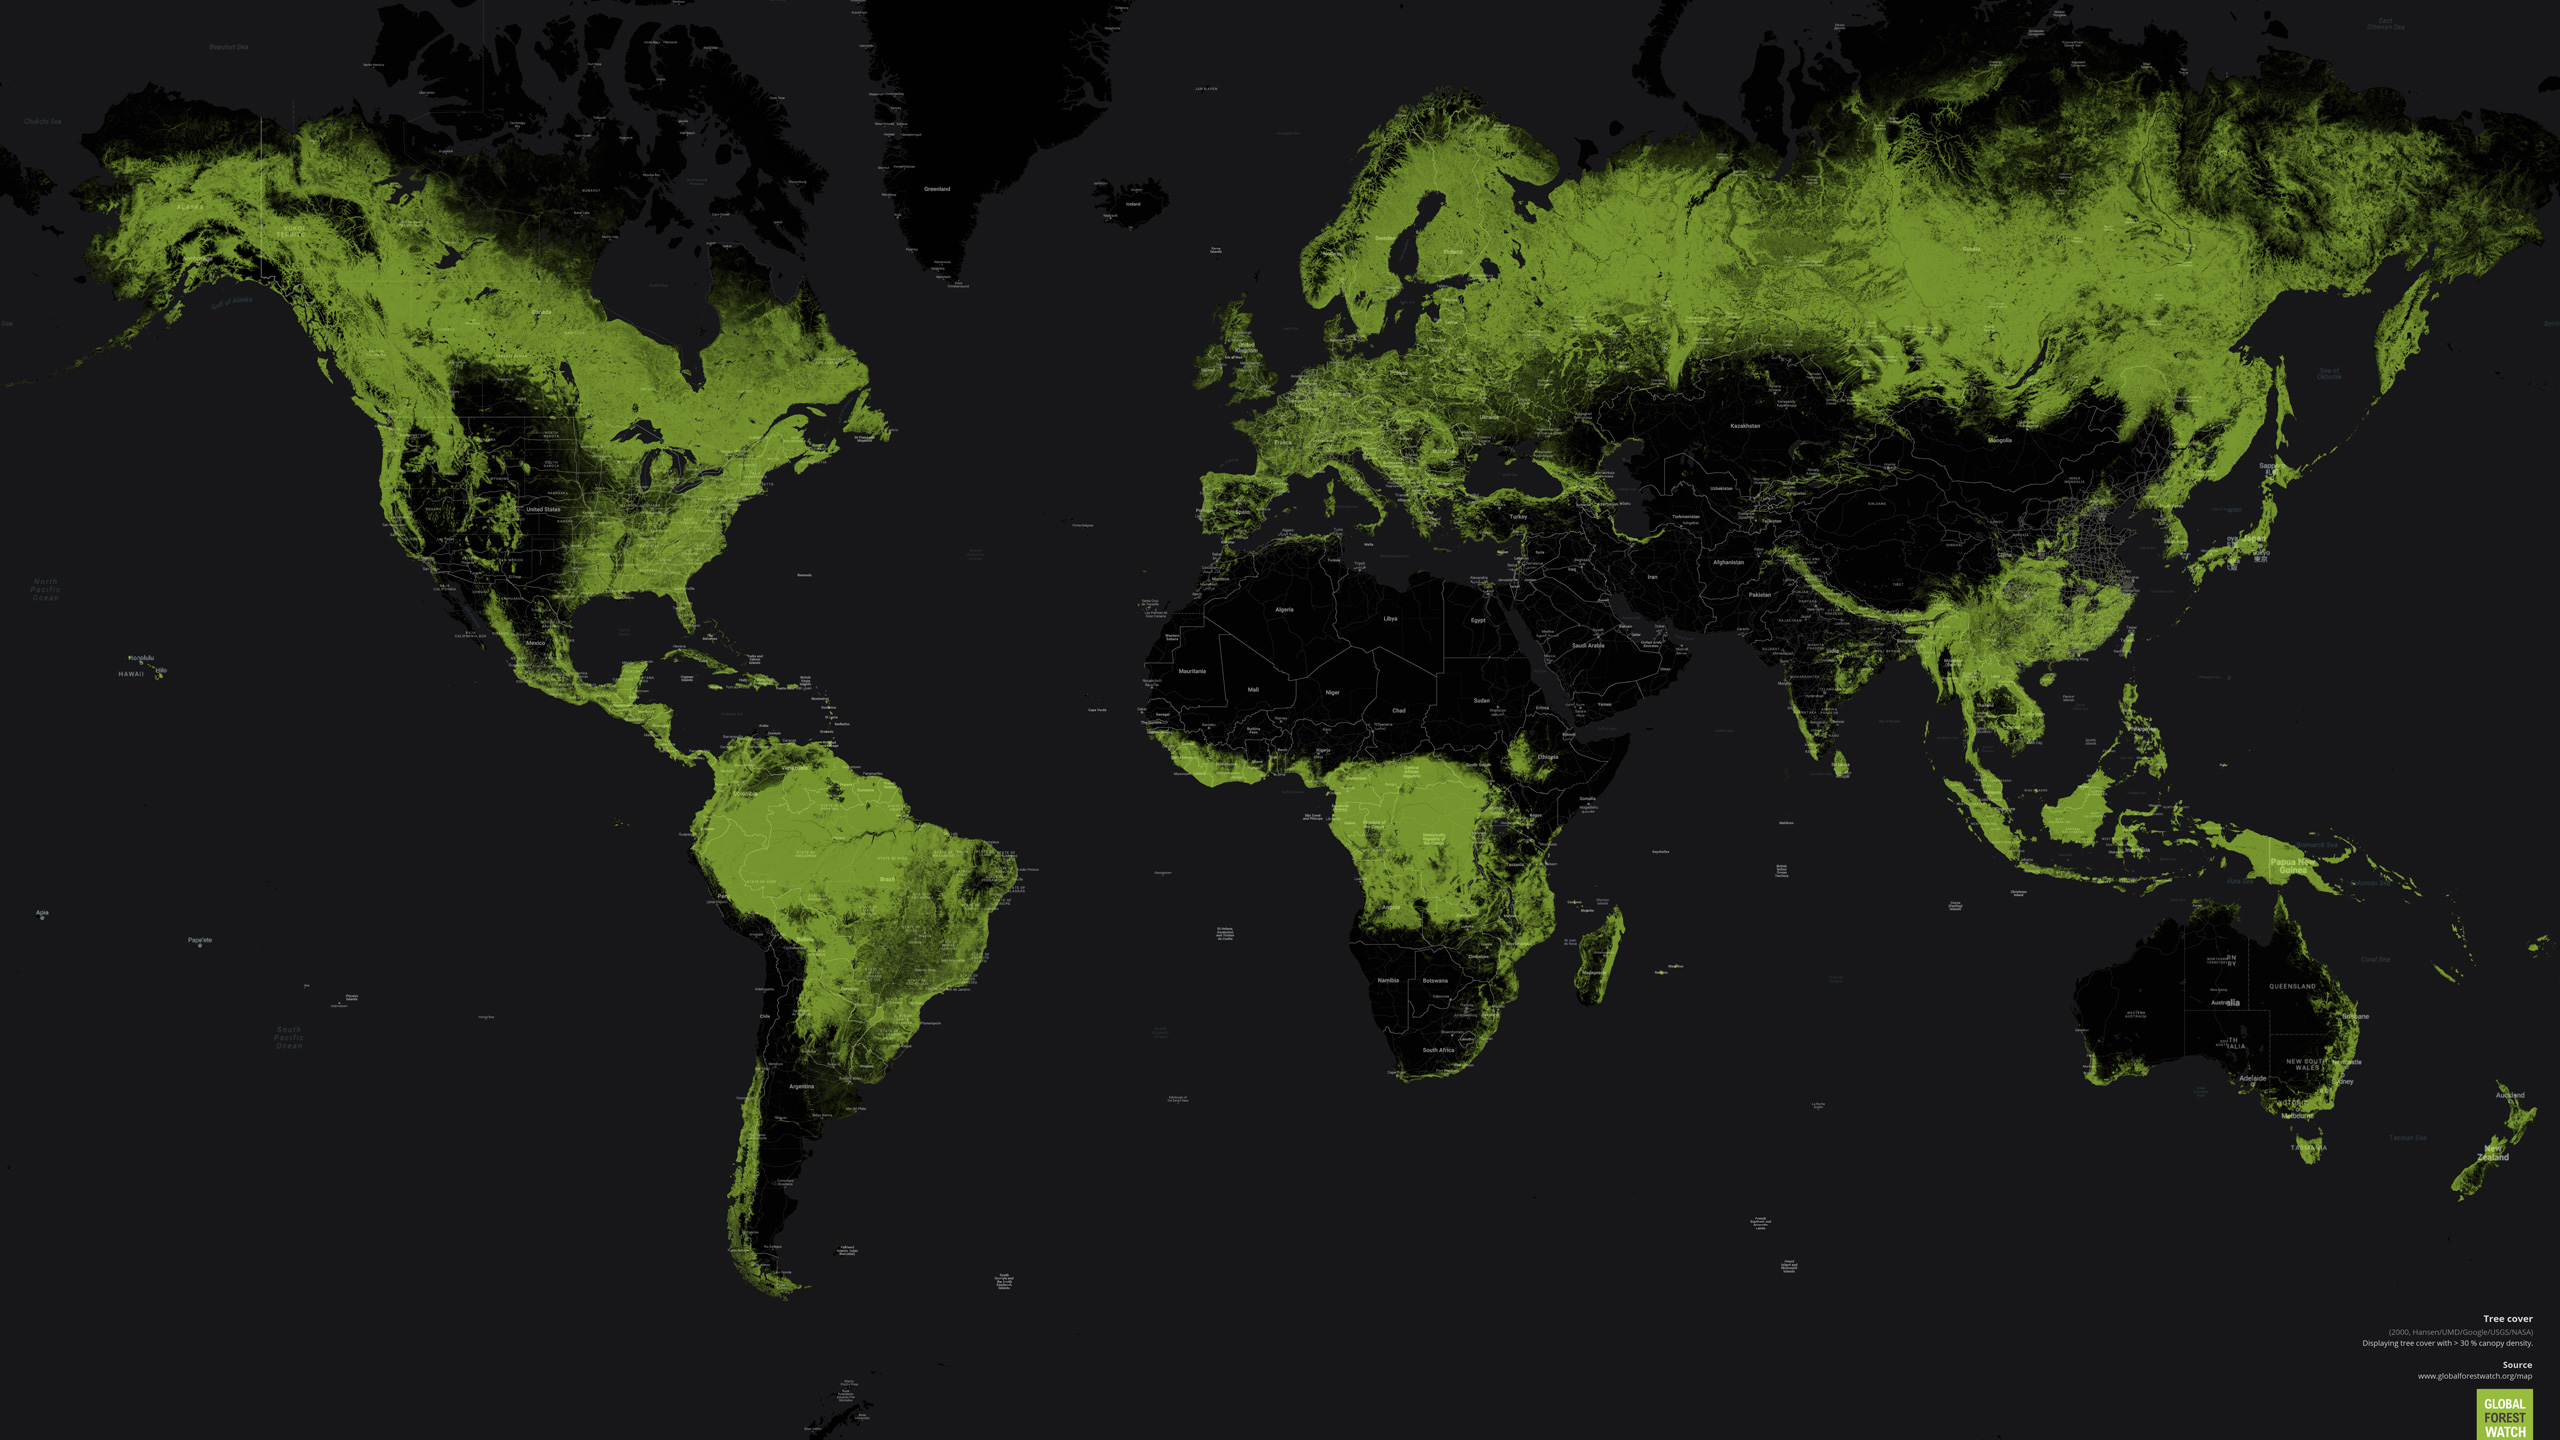 Impact on the world's forests